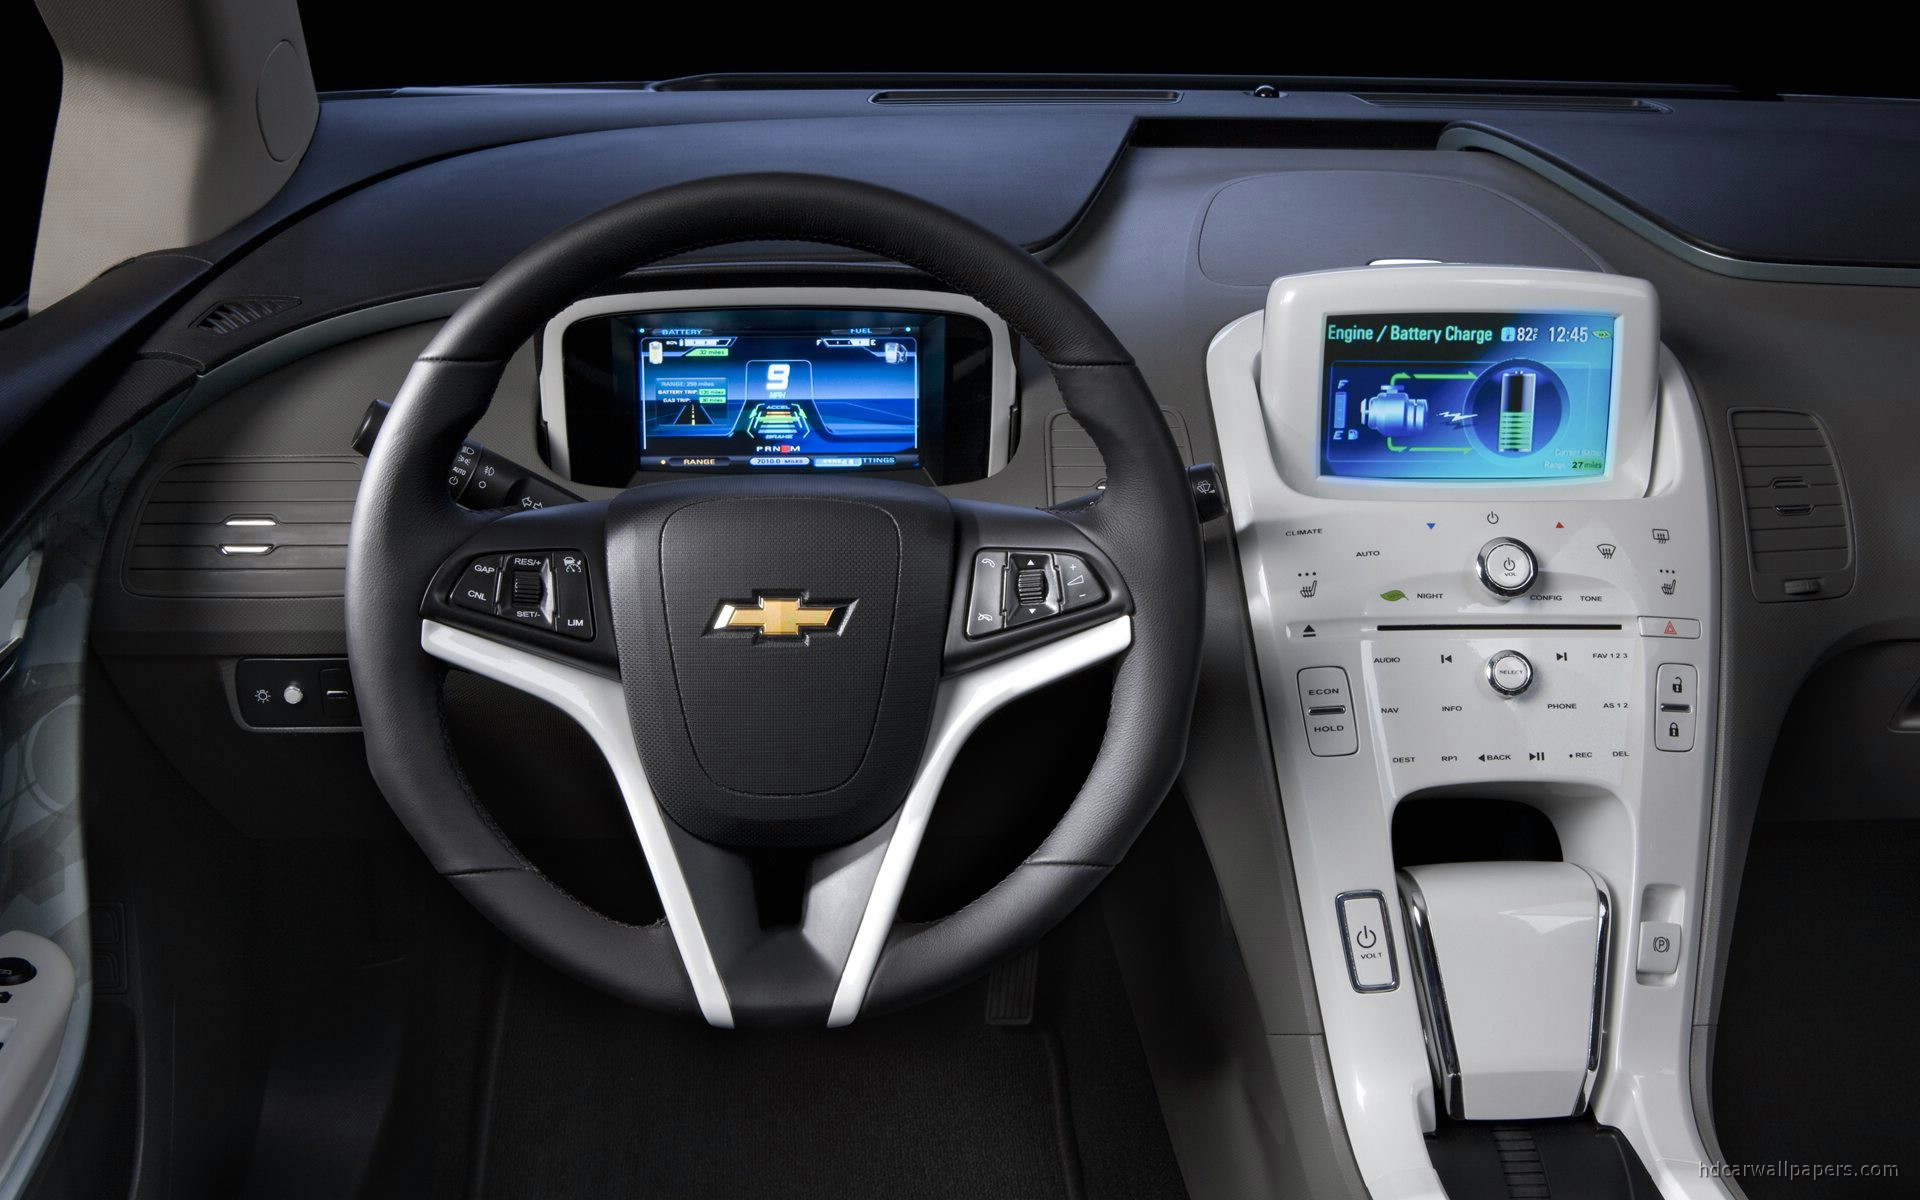 Tags: Interior Chevrolet Volt